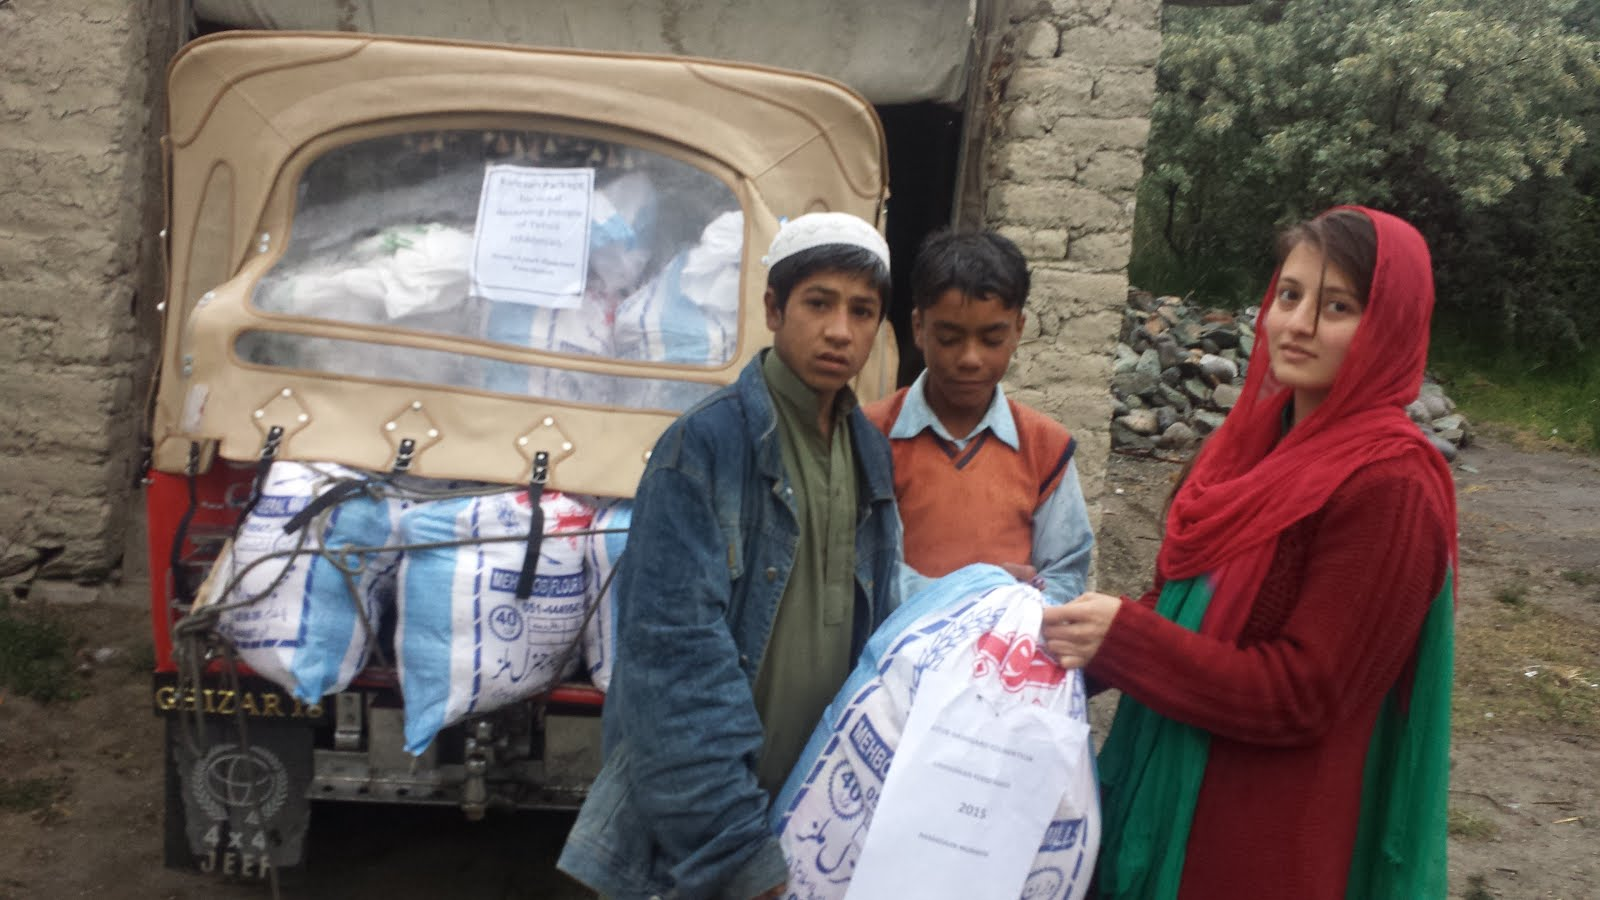 ANISA IHELPING IN DISTRIBUTION OF RAMAZAN FOOD PACKAGE